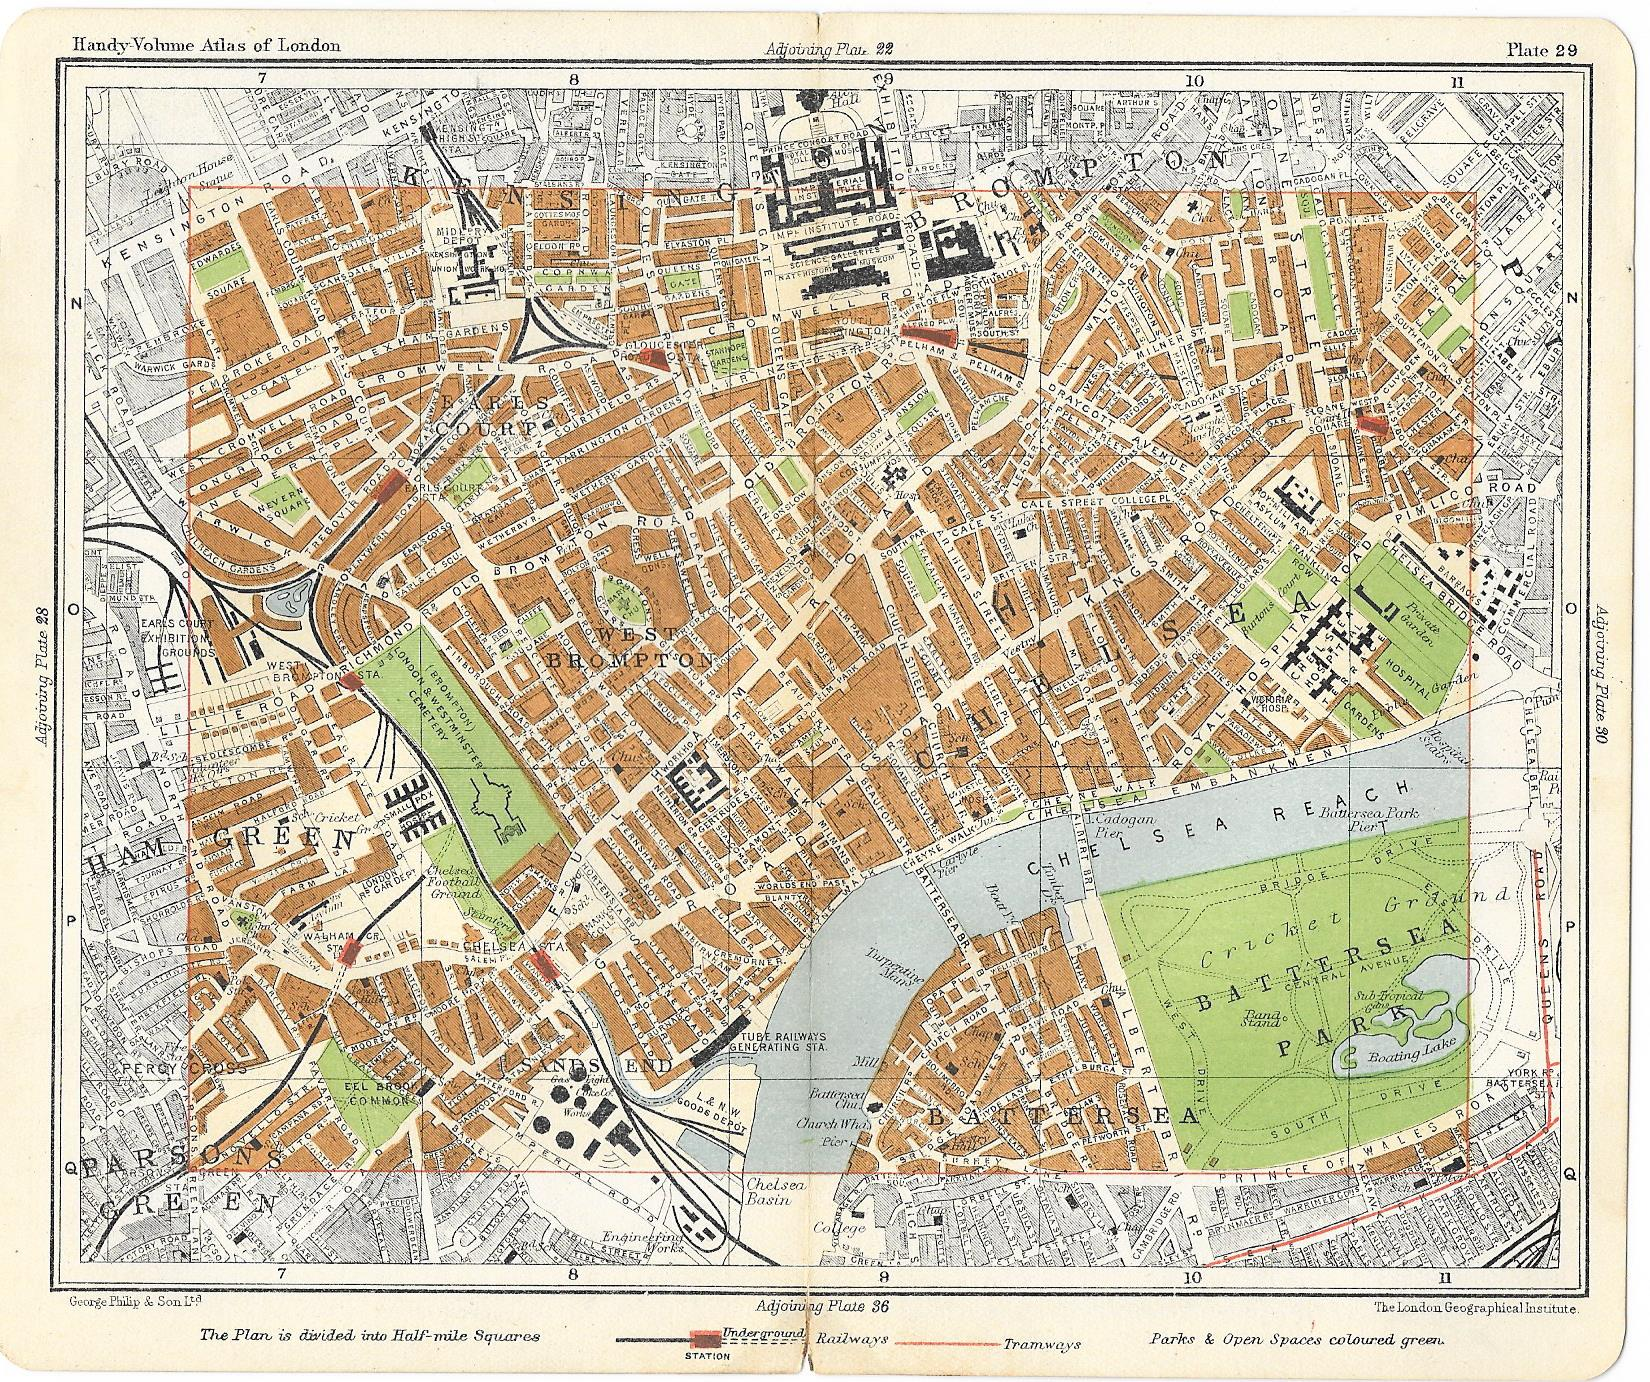 Chelsea antique map 1910 - Frontispiece on